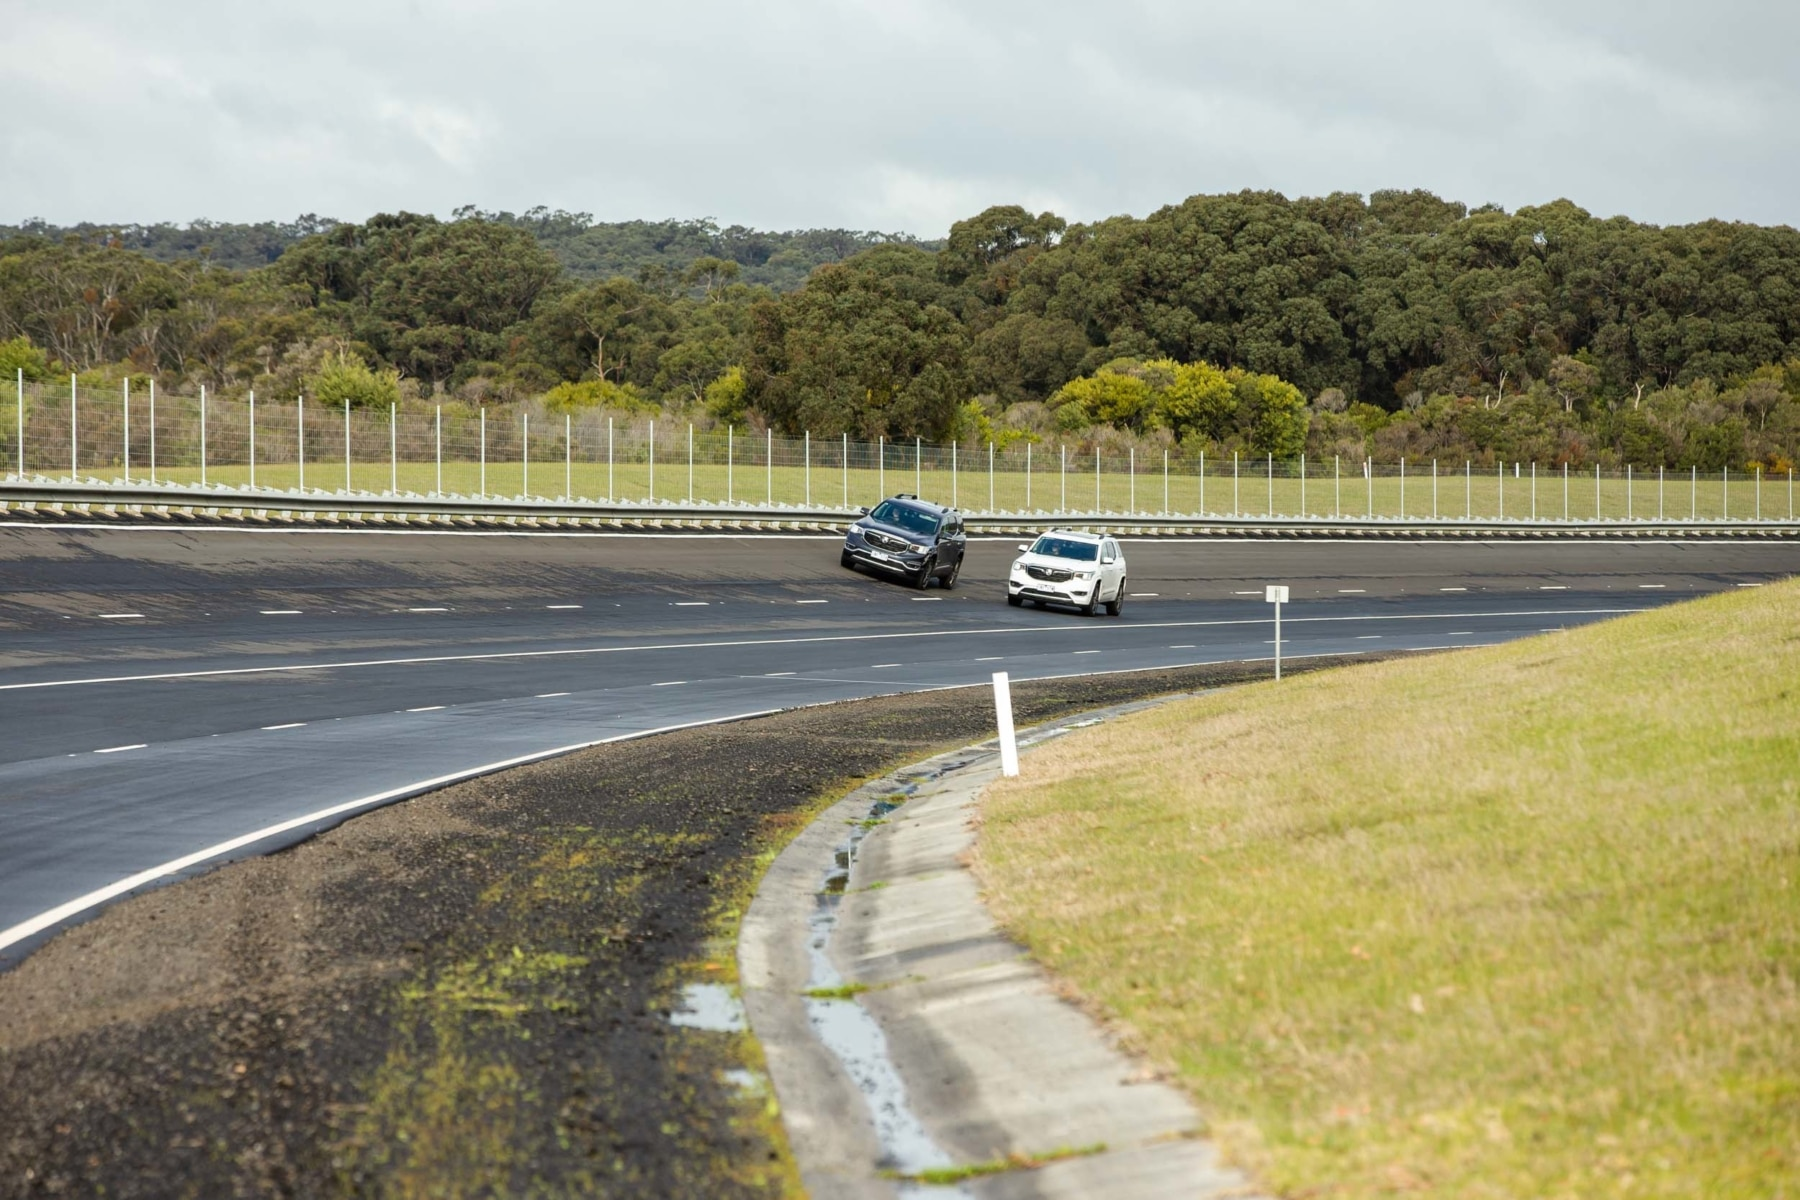 Holden Carear 51 on track